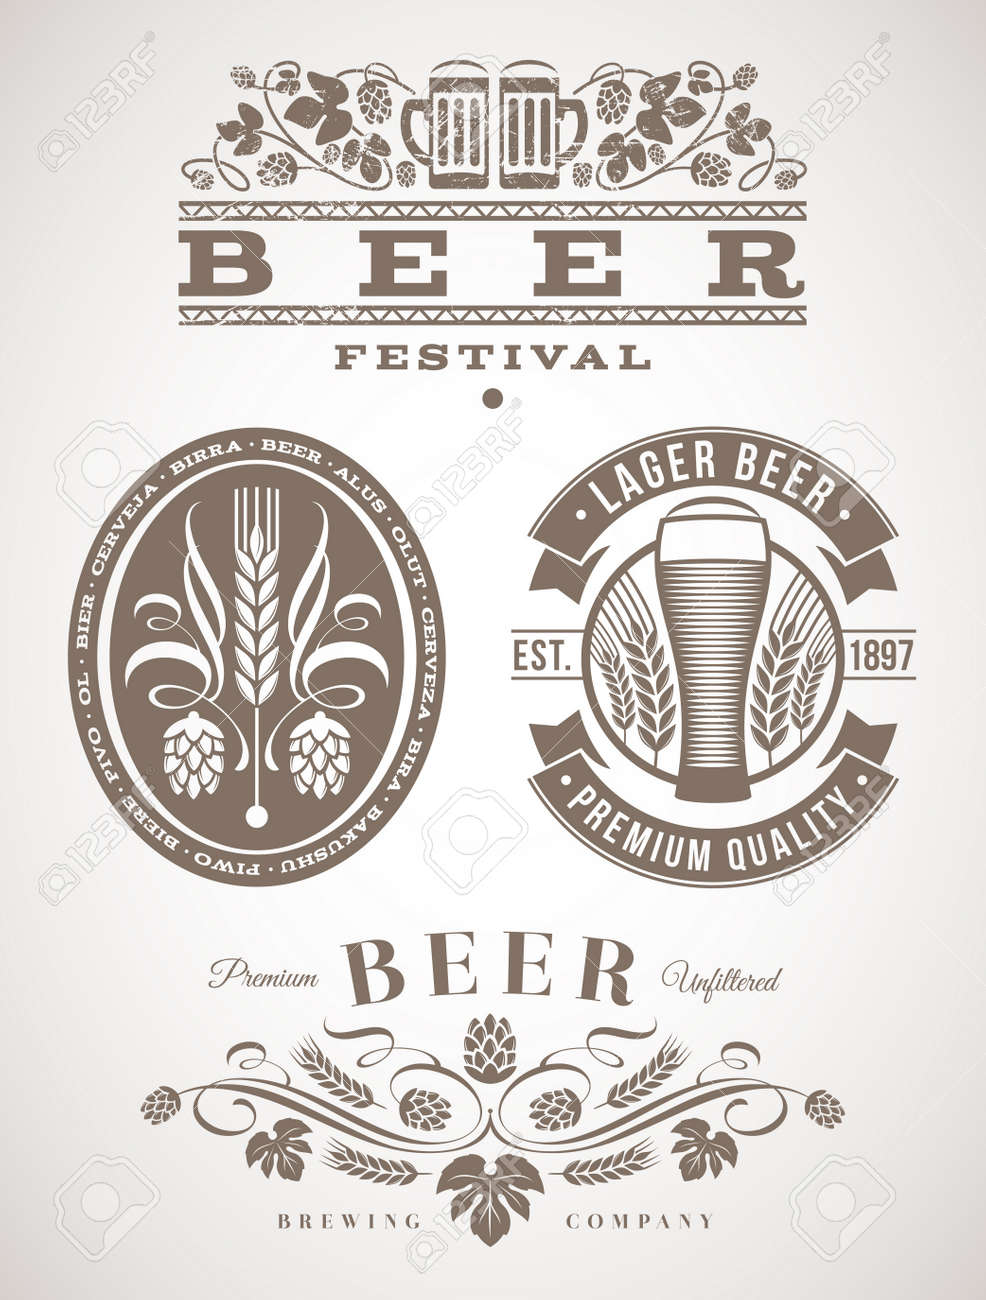 Beer emblems and labels - vector illustration Stock Vector - 20276548